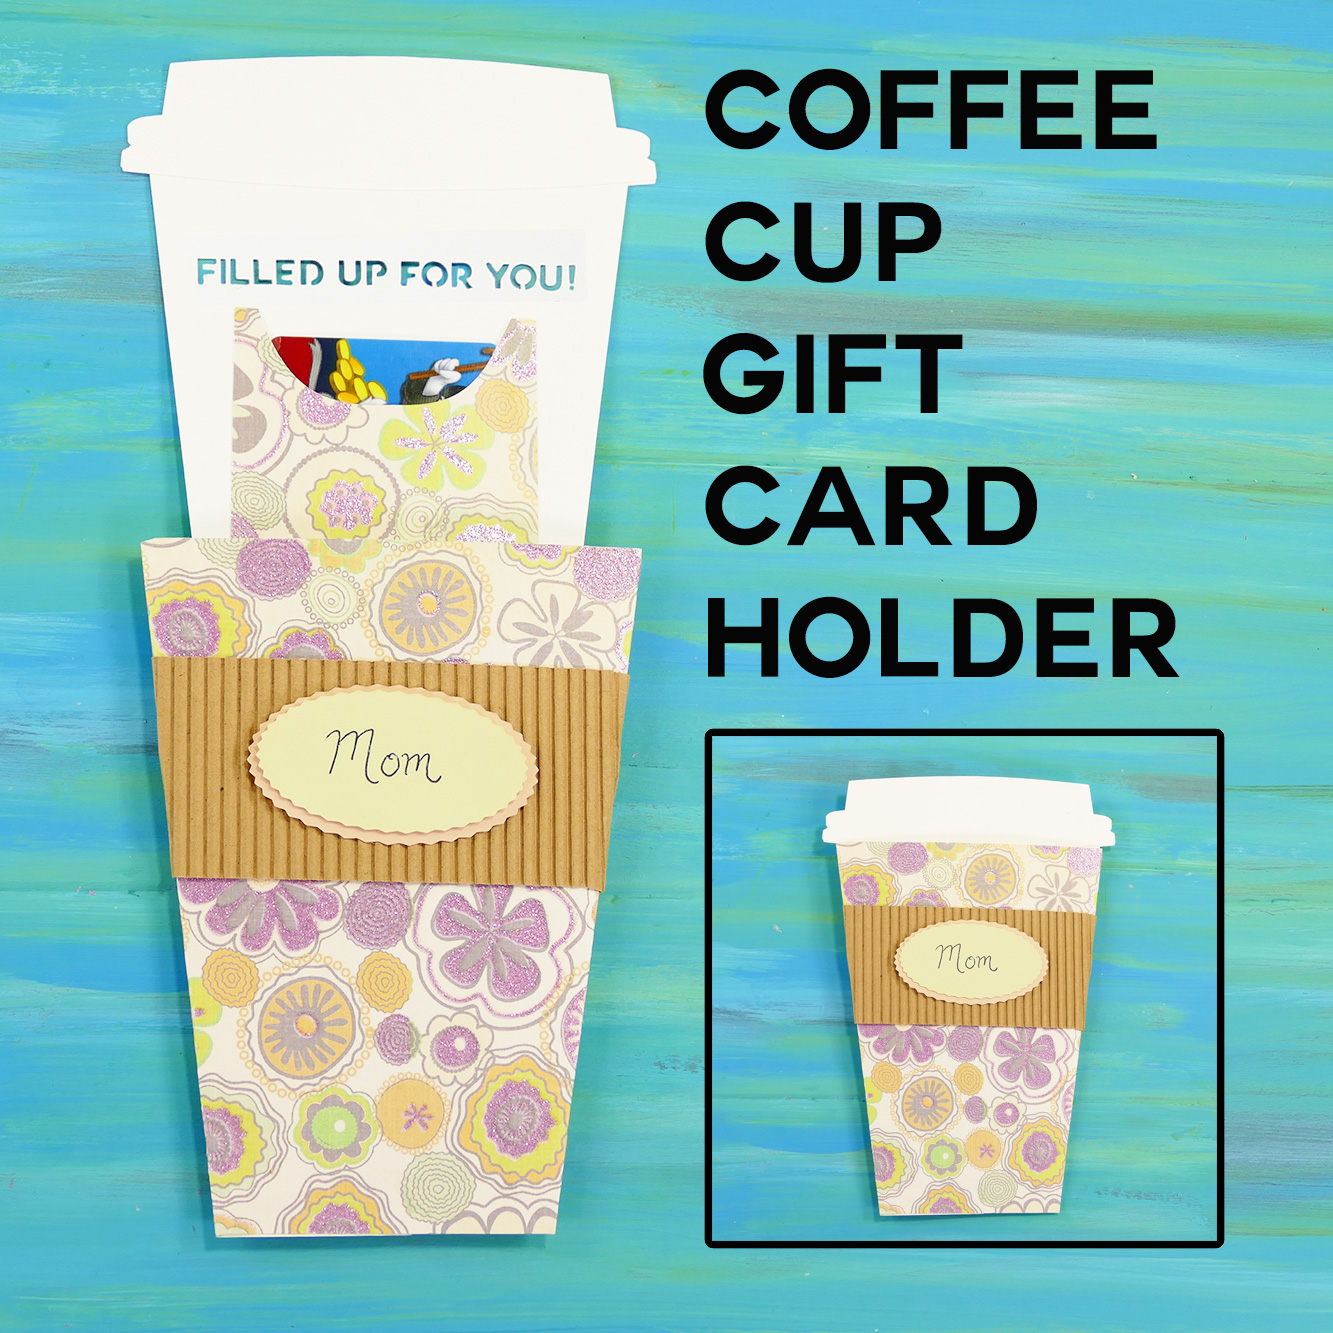 Take-Out Coffee Cup Gift Card Holder | JenniferMaker.com